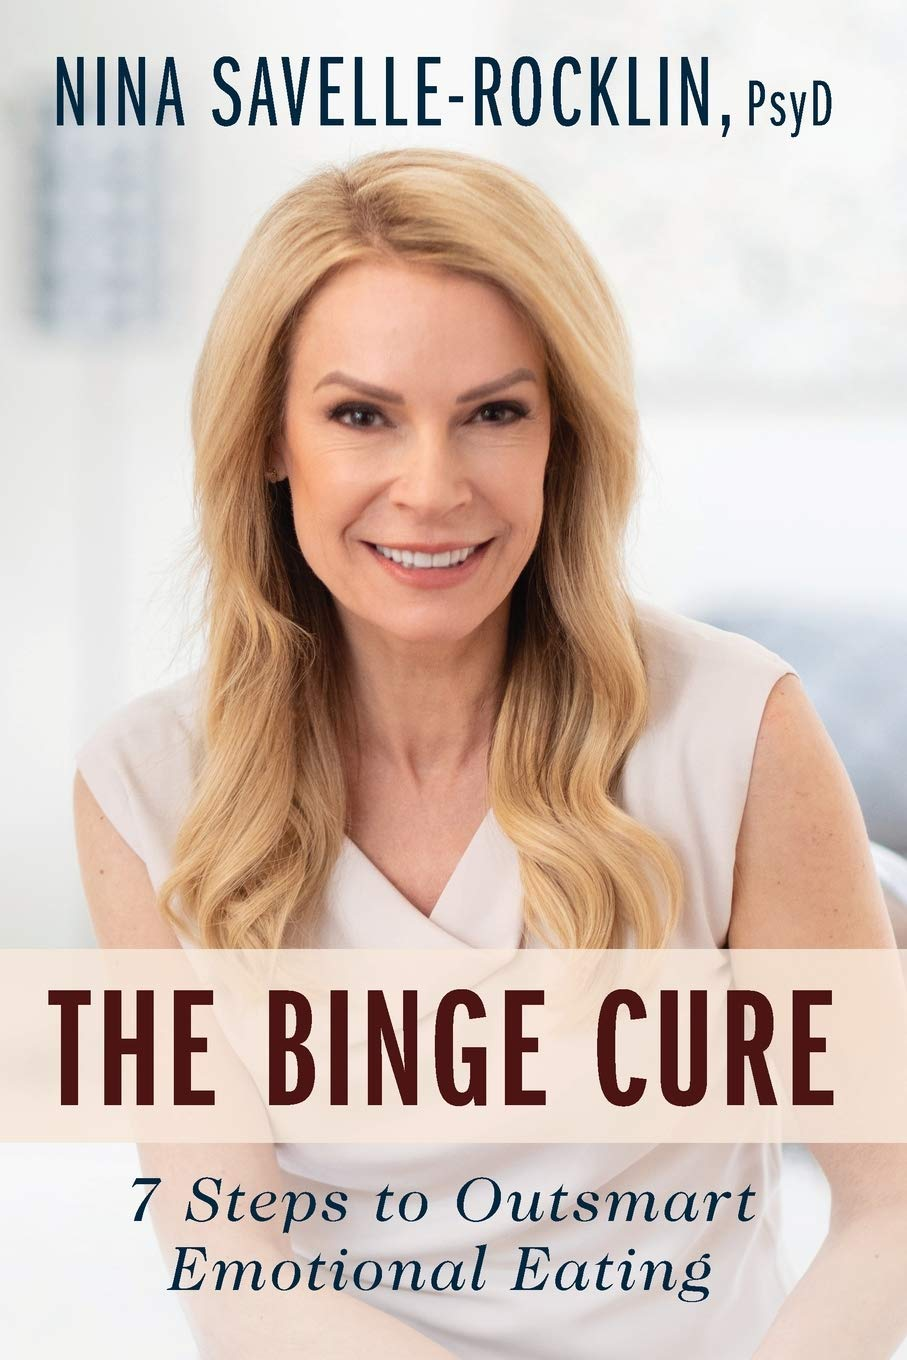 Download The Binge Cure: 7 Steps To Outsmart Emotional Eating 